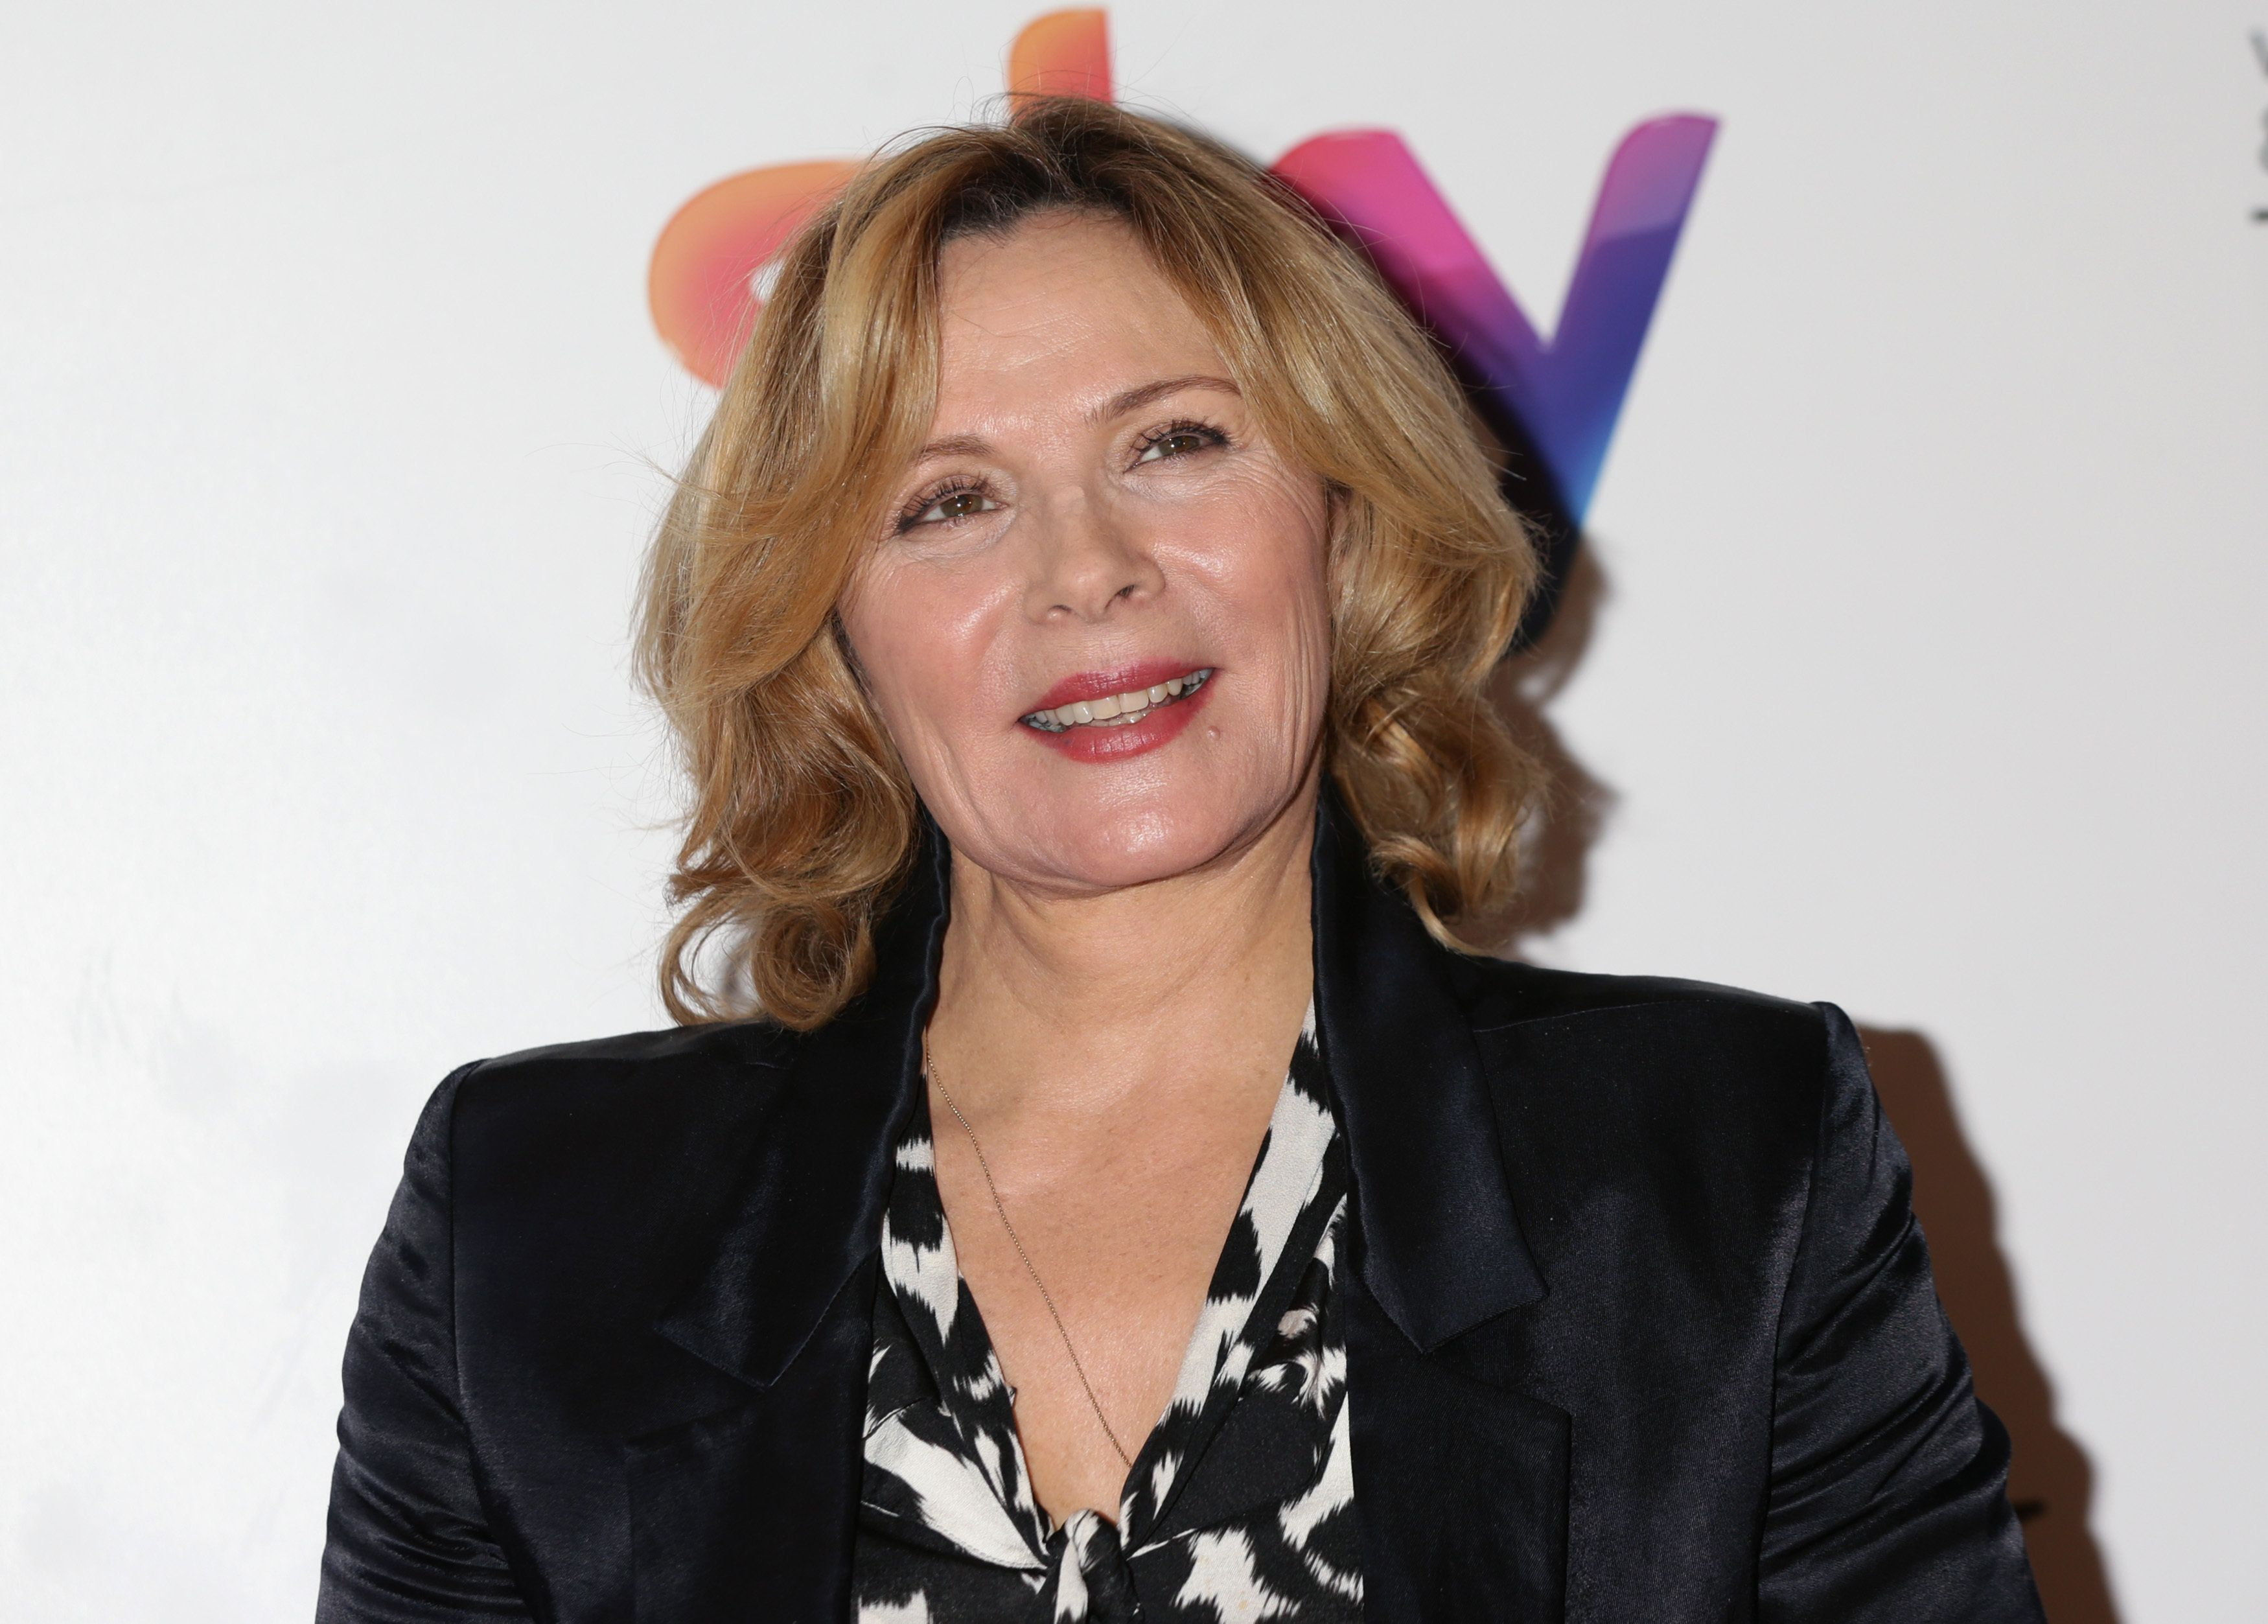 Kim Cattrall at the Women in Film & TV Awards in